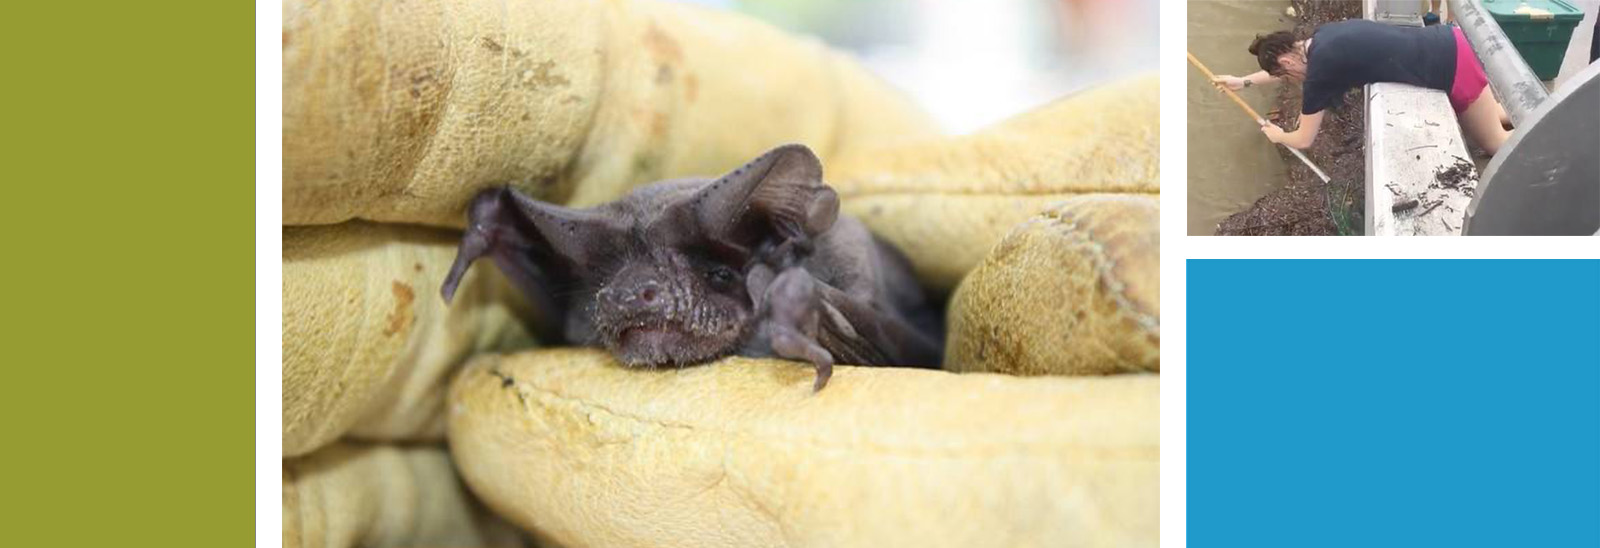 Houston Bat Rescue